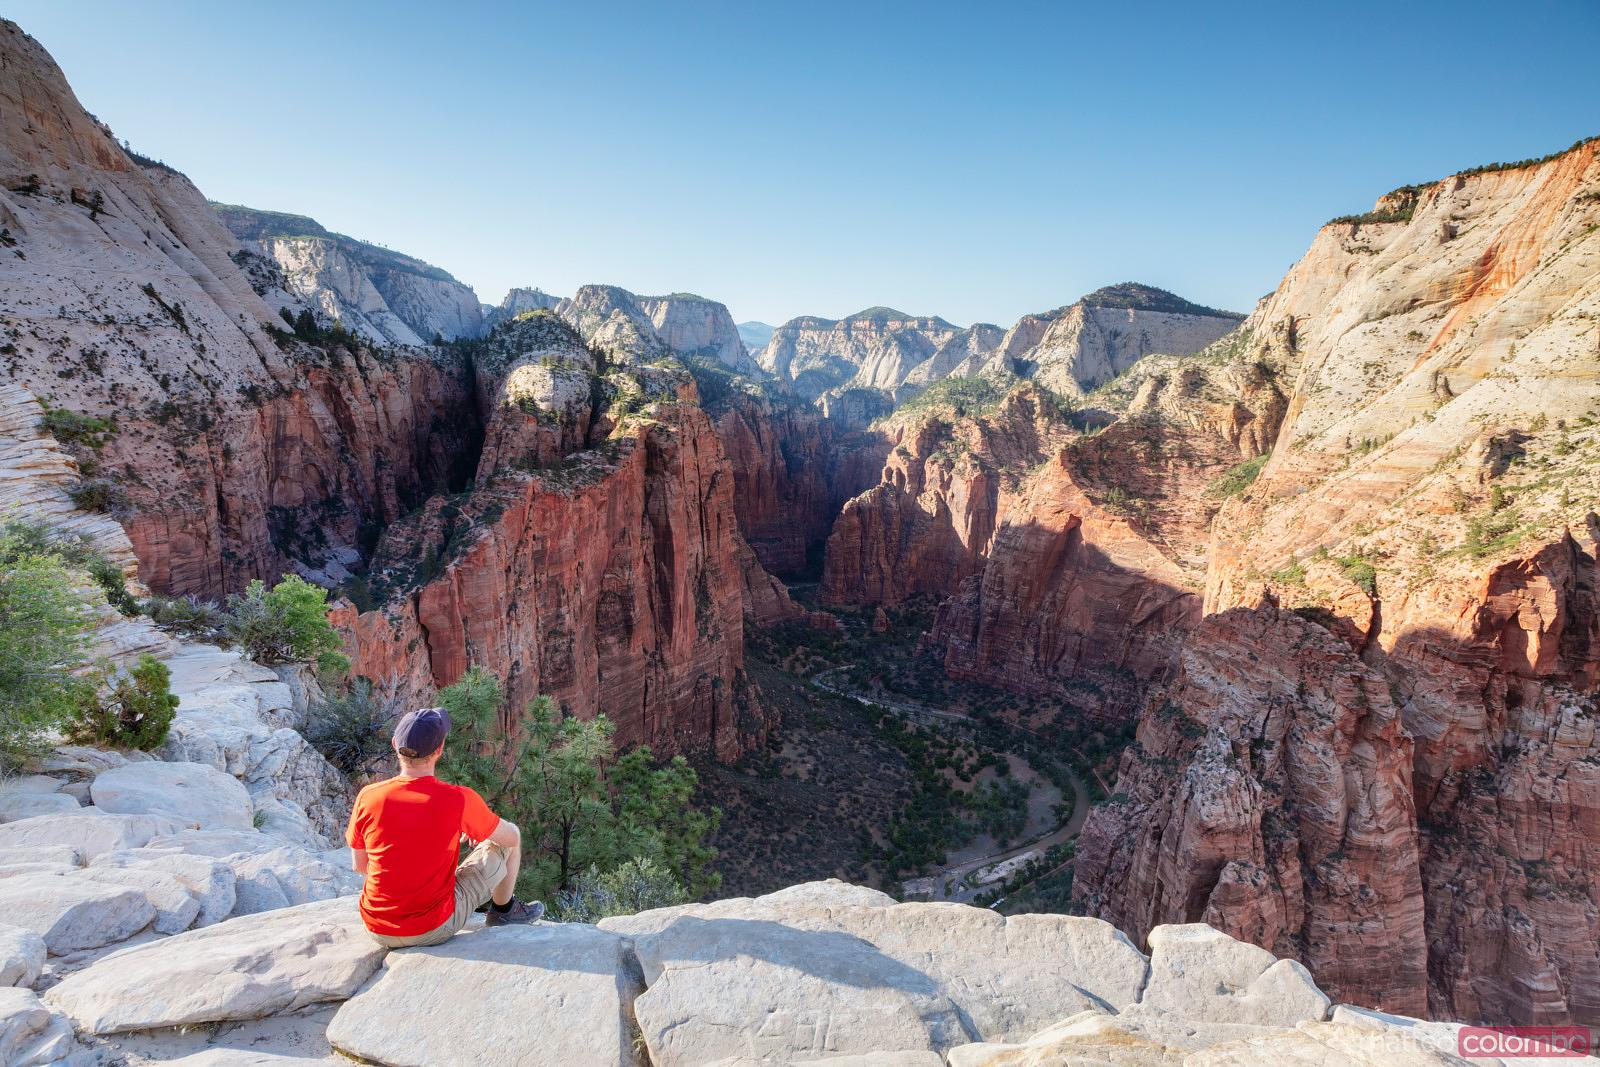 Man looking at view, Zion National park, USA